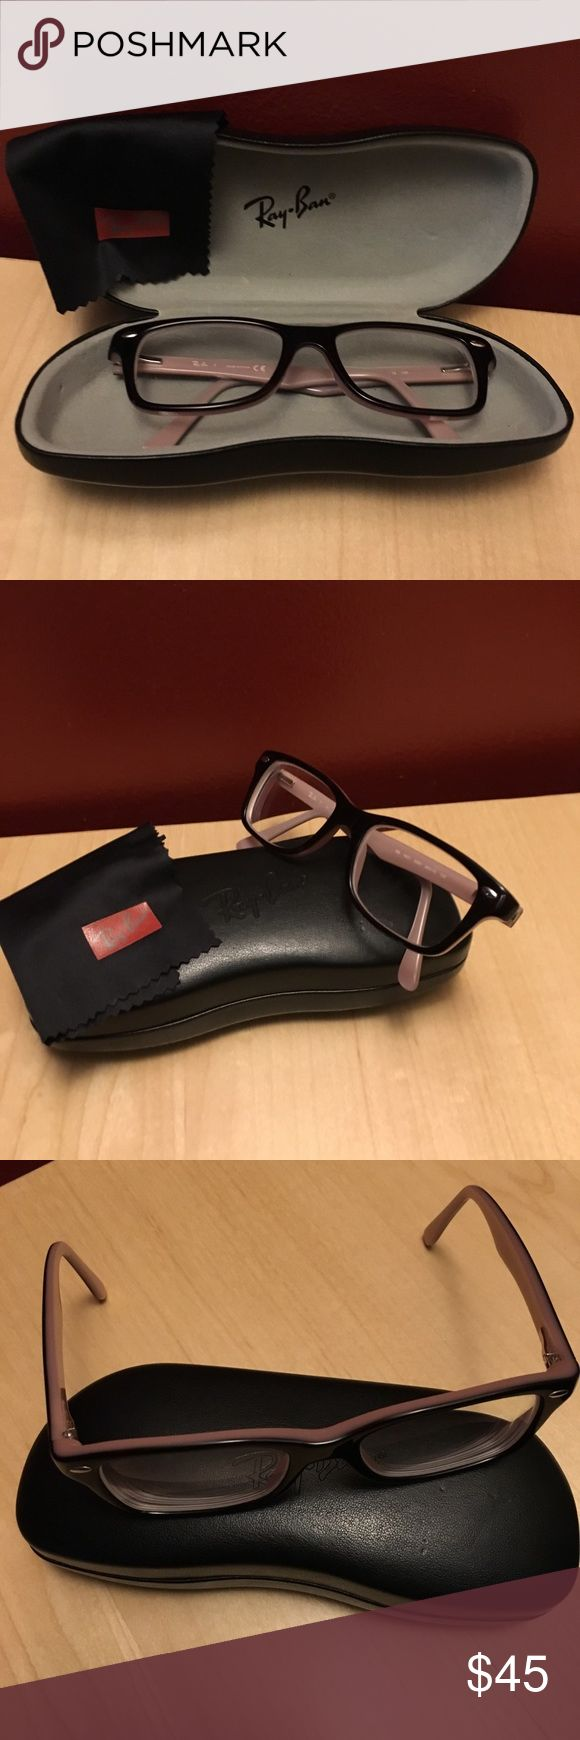 Ray Ban Junior RB 1531 Brown/Pink GUC these glasses are pre-owned with a minimal amount of wear on the frames. The lenses will needed to be changed to your own prescription. Ray-Ban Accessories